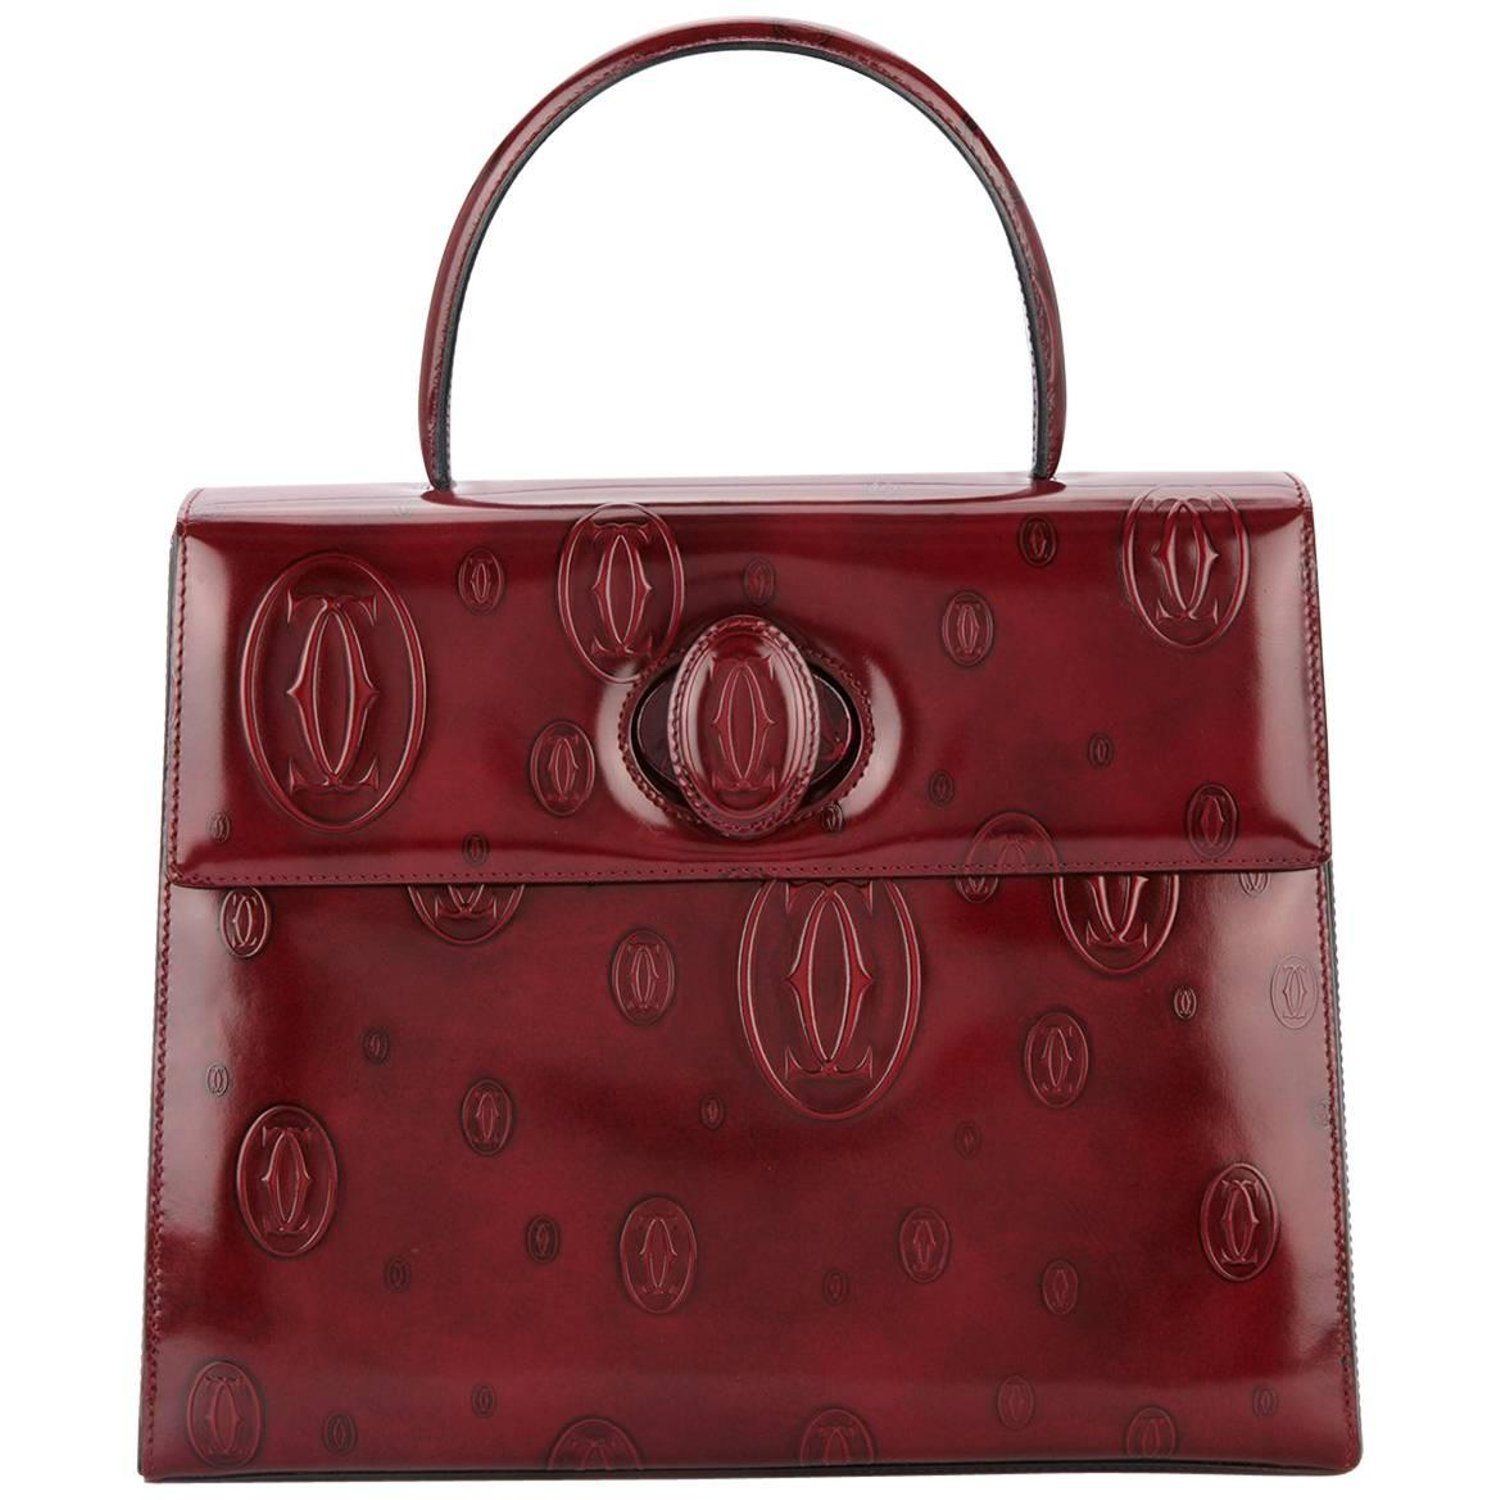 2ea3067eaf4b Cartier Burgundy Patent Leather Top Handle Satchel Kelly Style Evening Flap  Bag